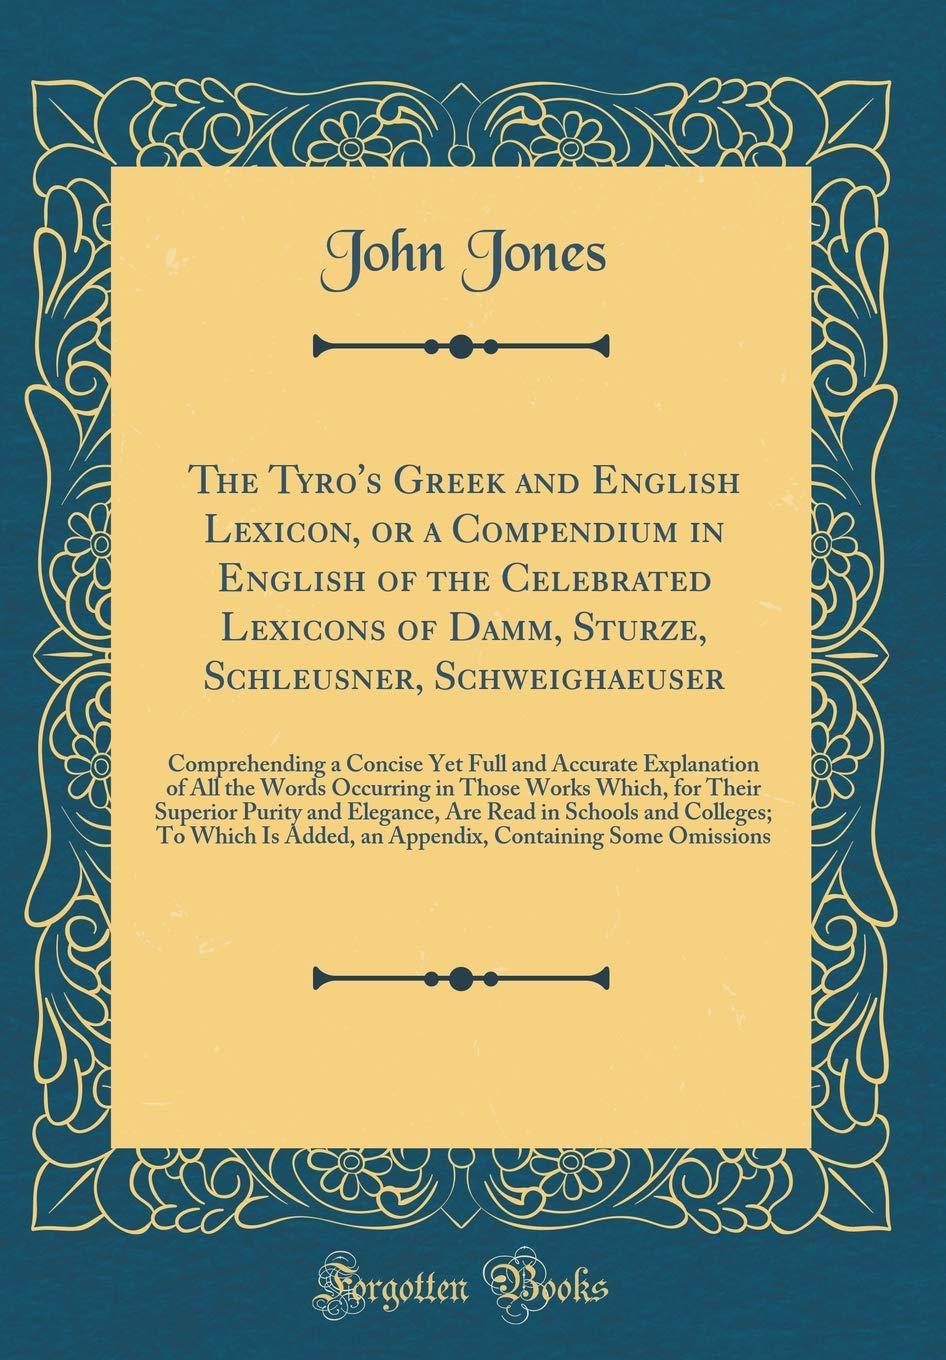 The Tyro's Greek and English Lexicon, or a Compendium in English of the Celebrated Lexicons of Damm, Sturze, Schleusner, Schweighaeuser: Comprehending ... Occurring in Those Works Which, for Their S PDF